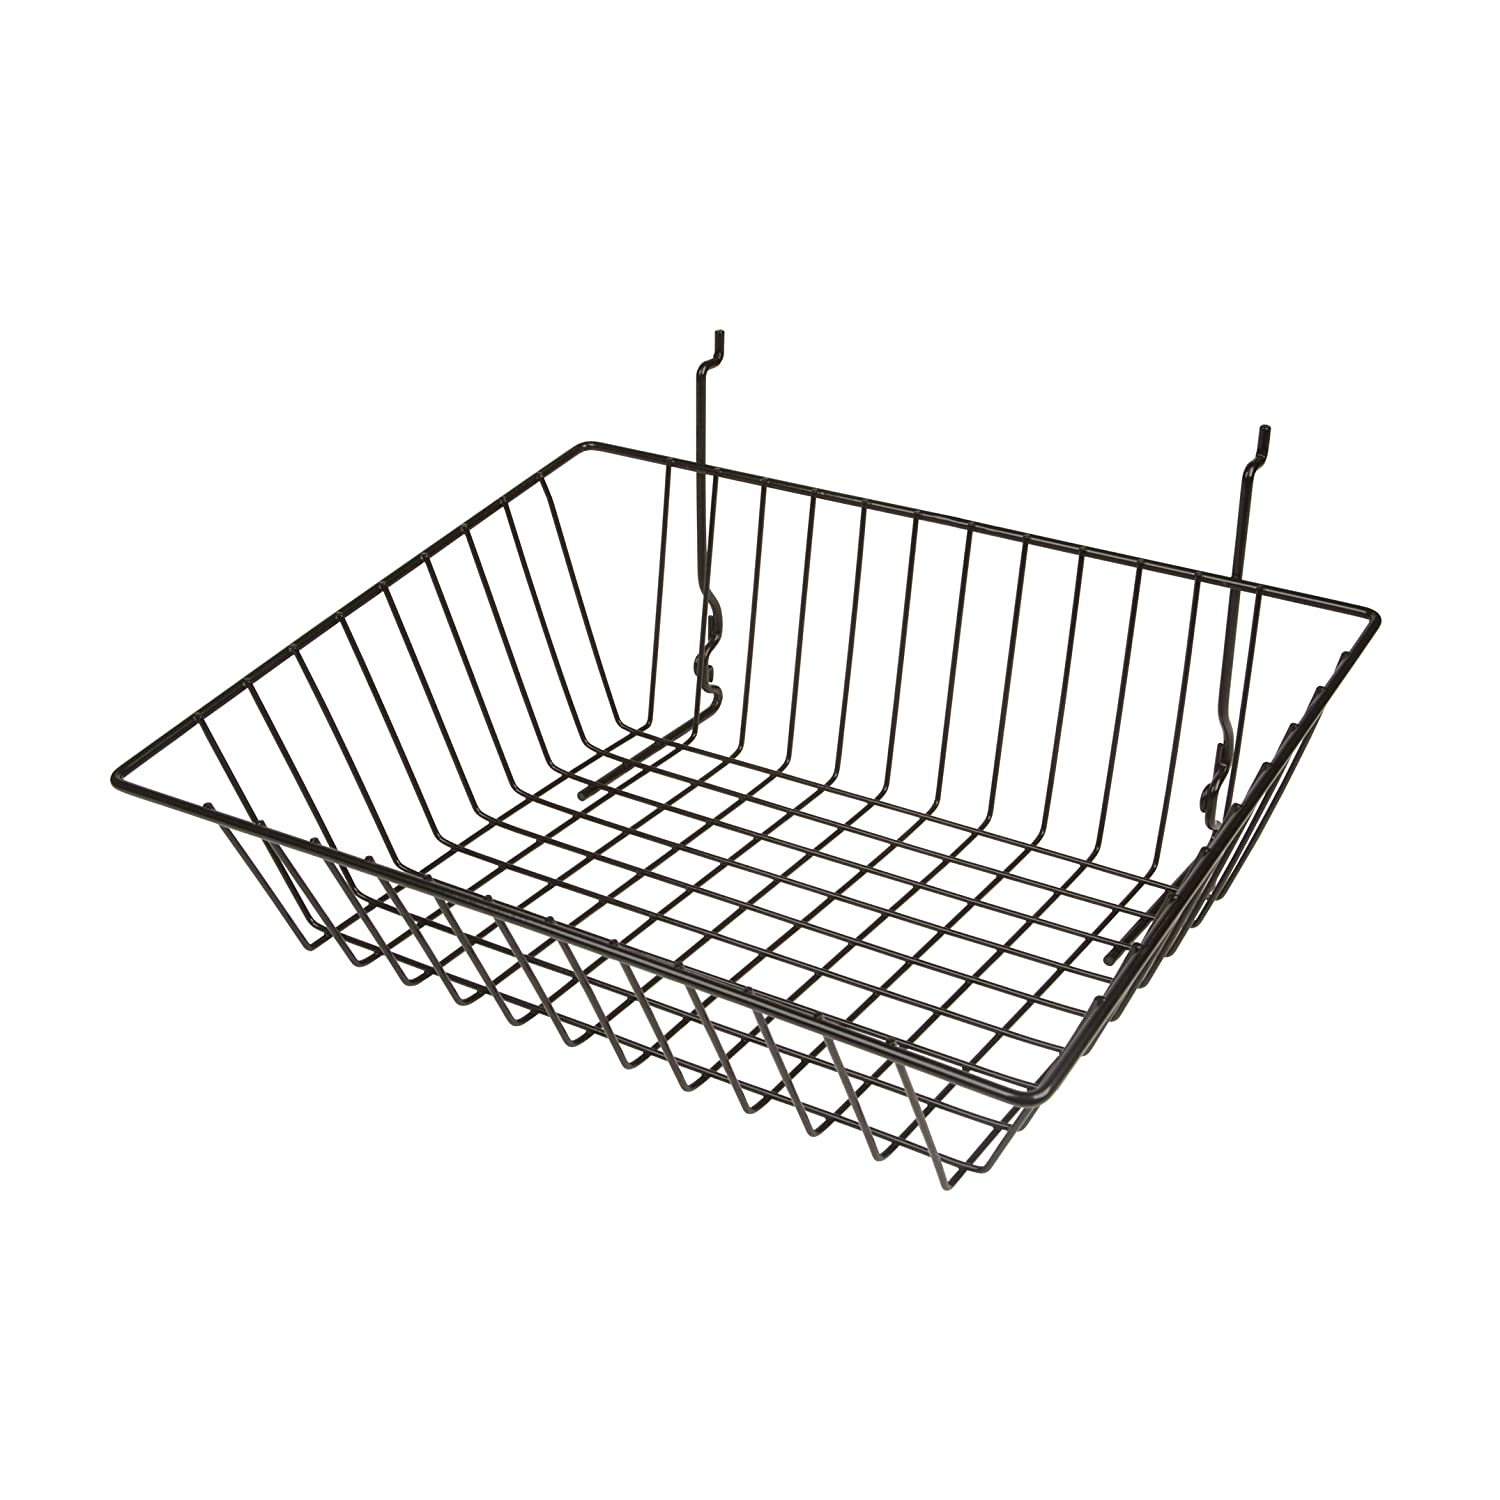 Set of 5 Wire Basket for Slatwall Gridwall or Pegboard 12W x 12D x 4H Small Black 5 Baskets